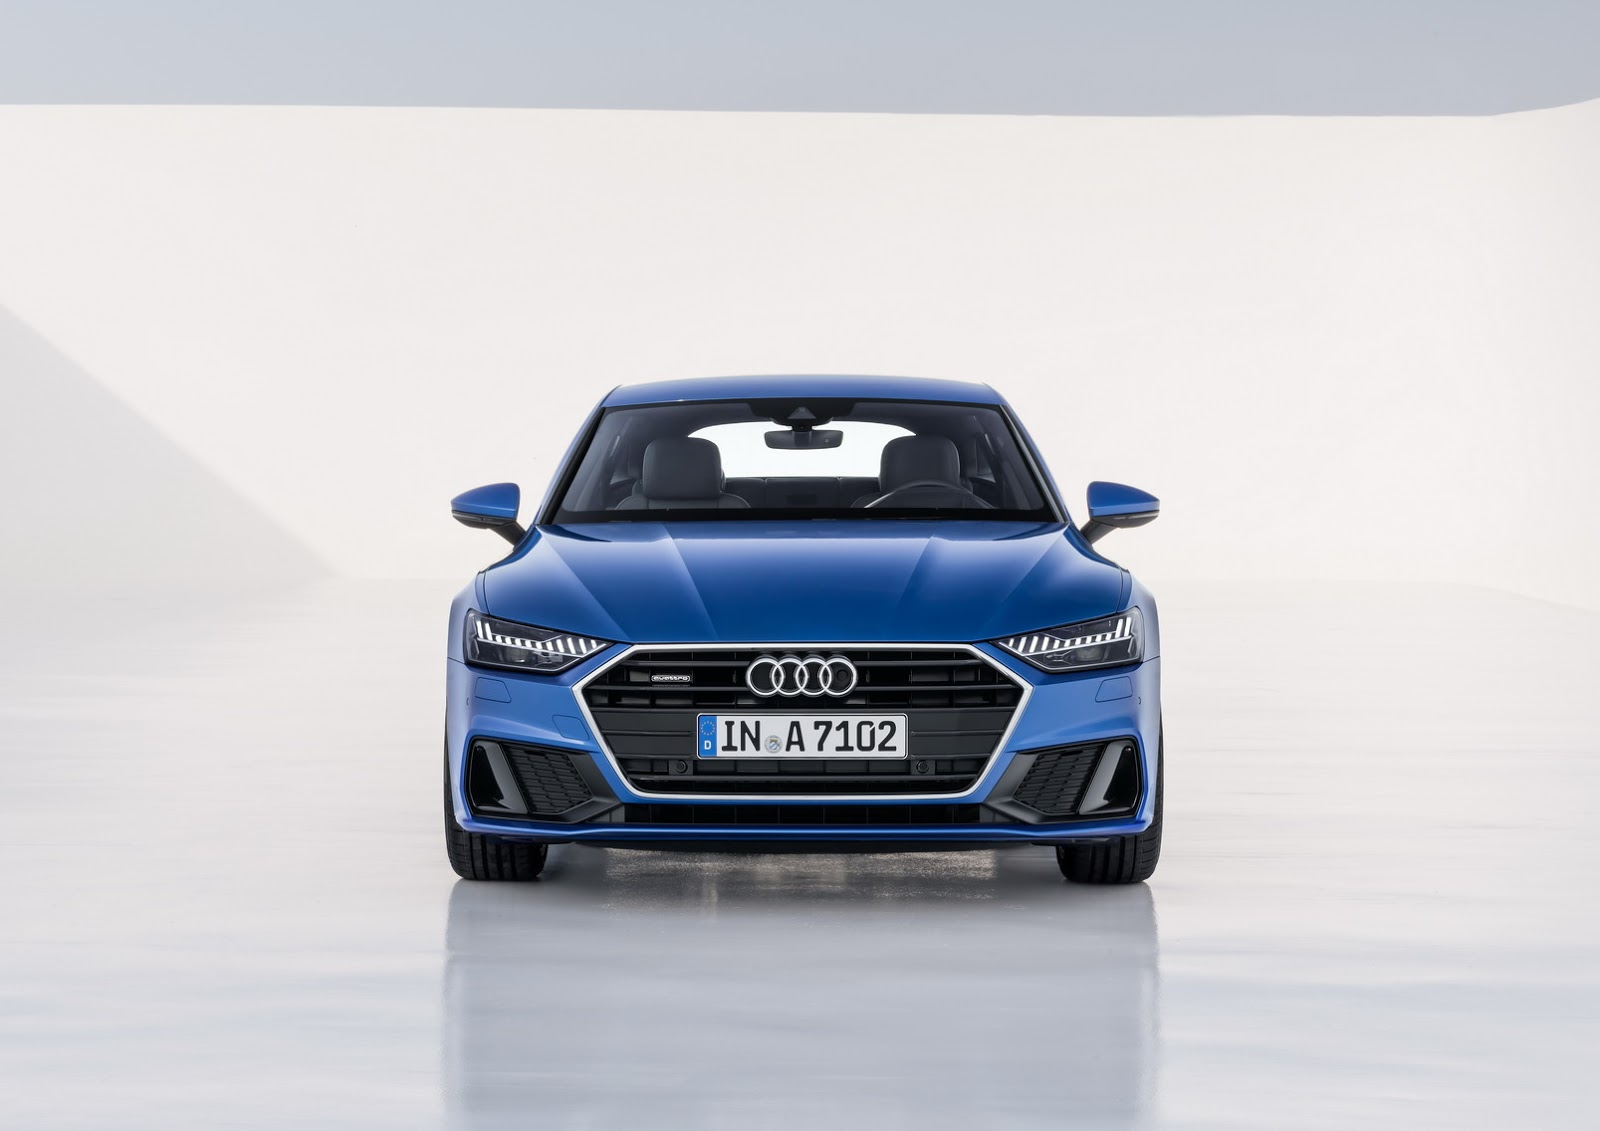 2019 Audi A7 Sportback Shines in New Official Videos - autoevolution